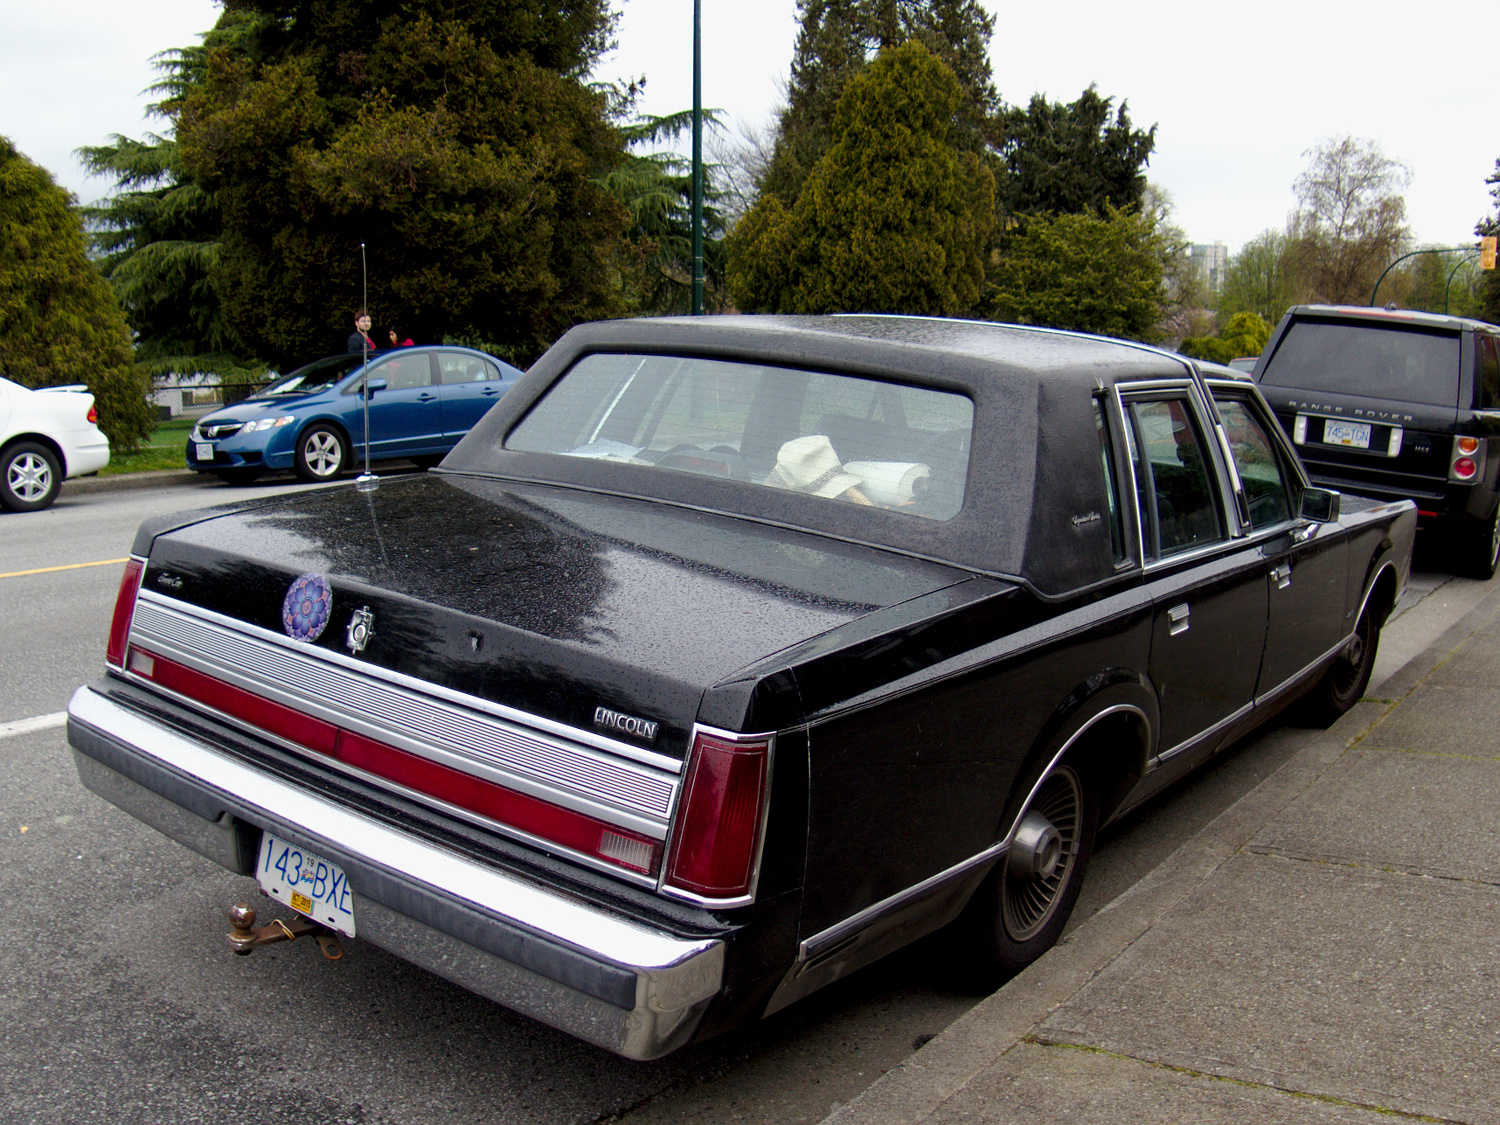 old parked cars vancouver 1988 lincoln town car. Black Bedroom Furniture Sets. Home Design Ideas